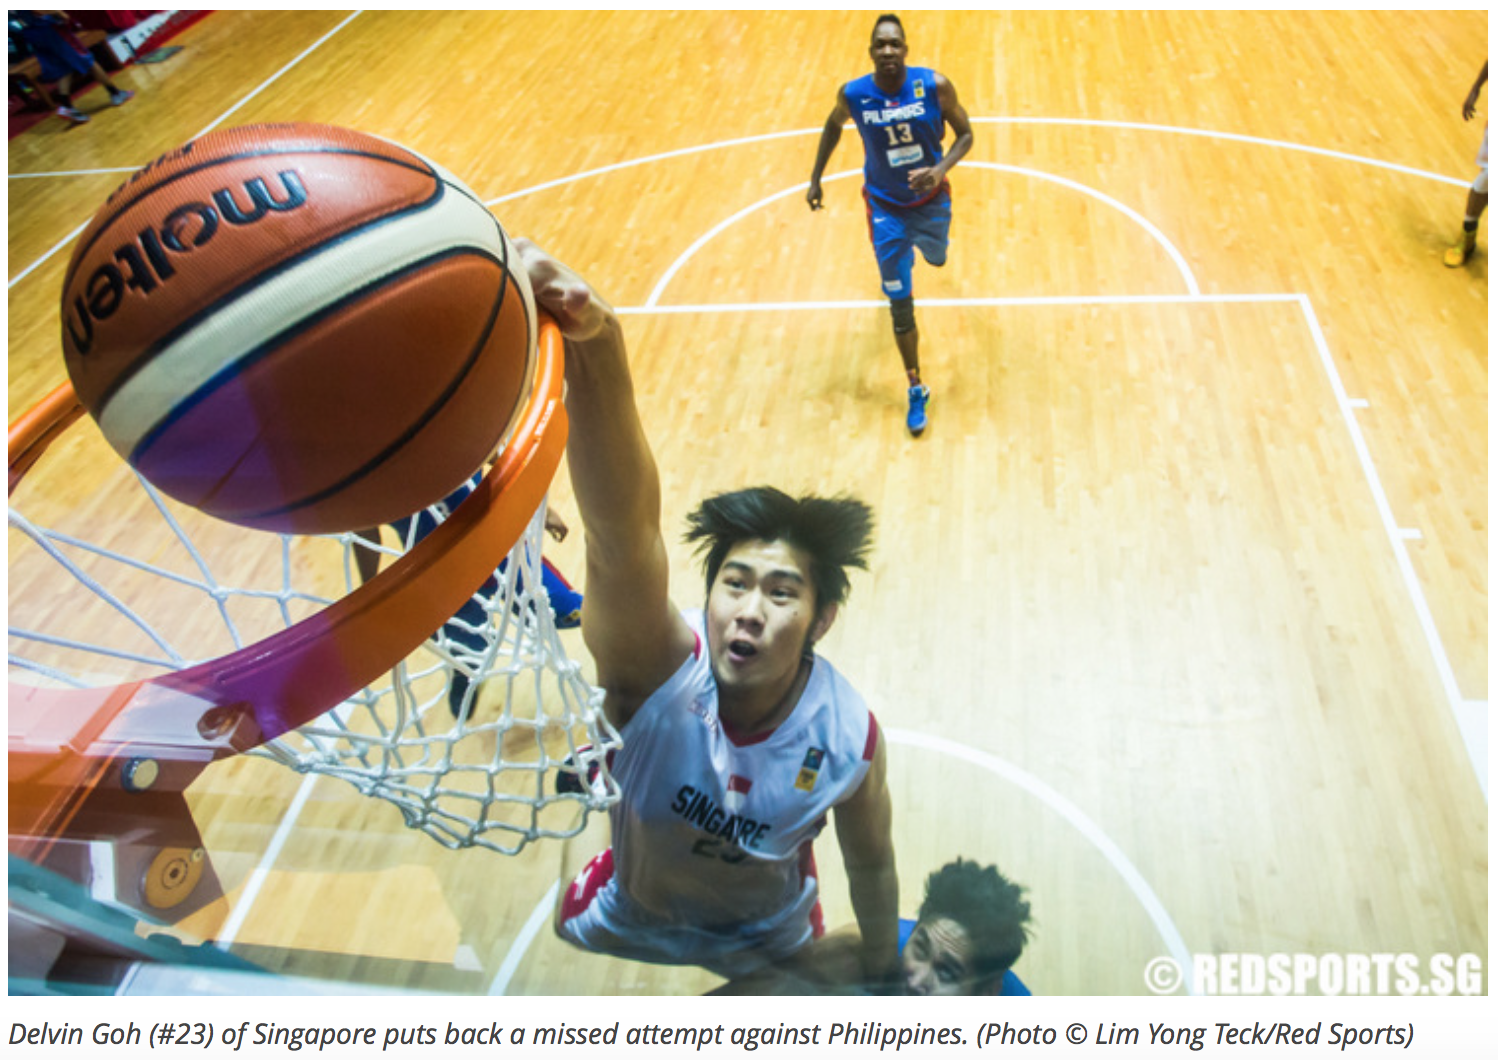 11th Southeast Asian Basketball Association Championship for Red Sports (www.redsports.sg)